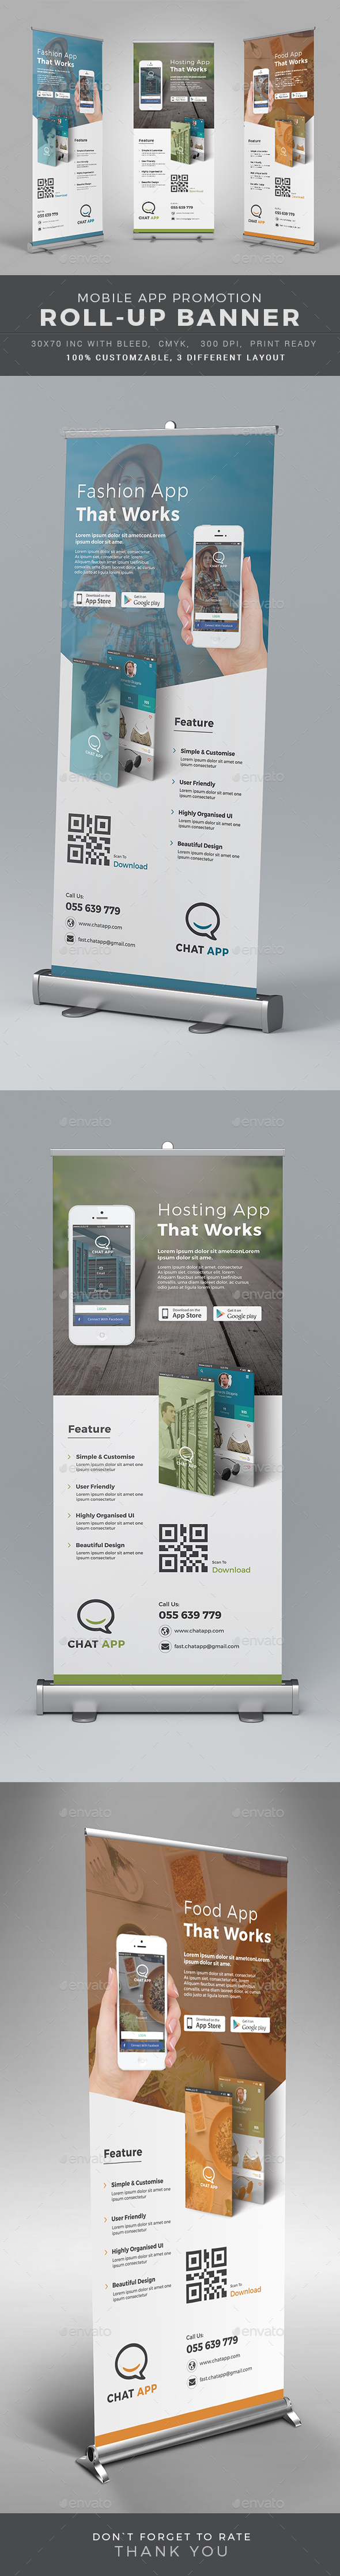 Mobile App Roll-up Banner - Signage Print Templates